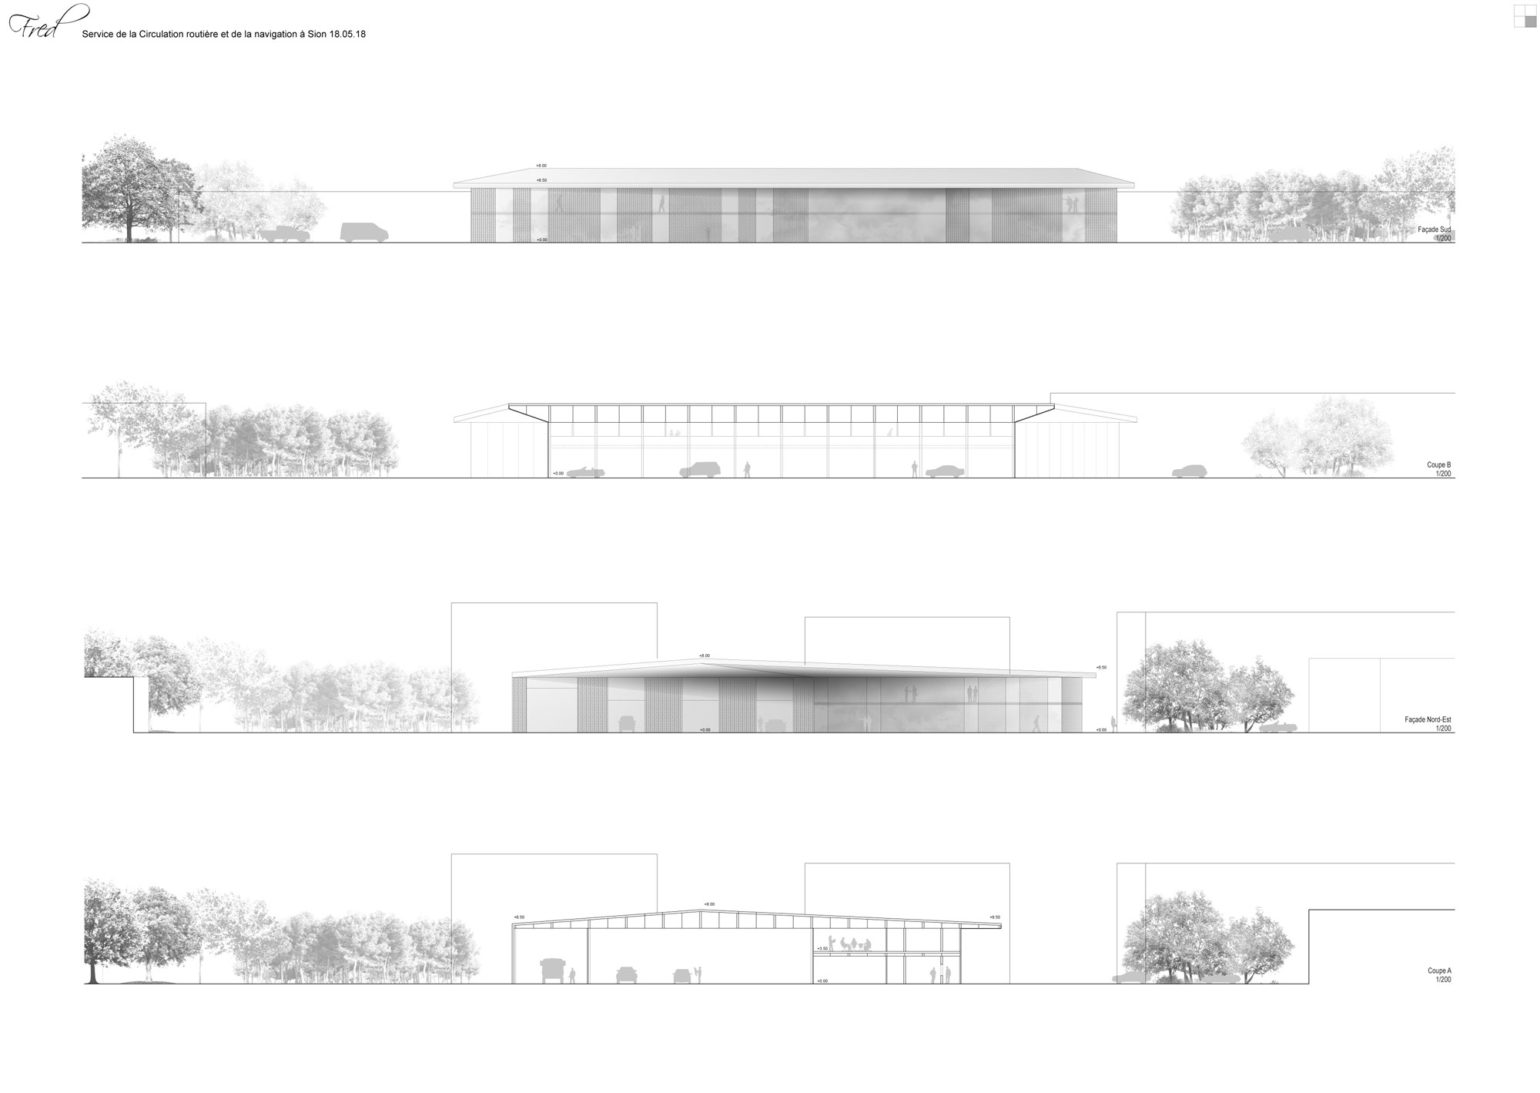 concours_service_circulation_sion_meyer_architecture_sion_05